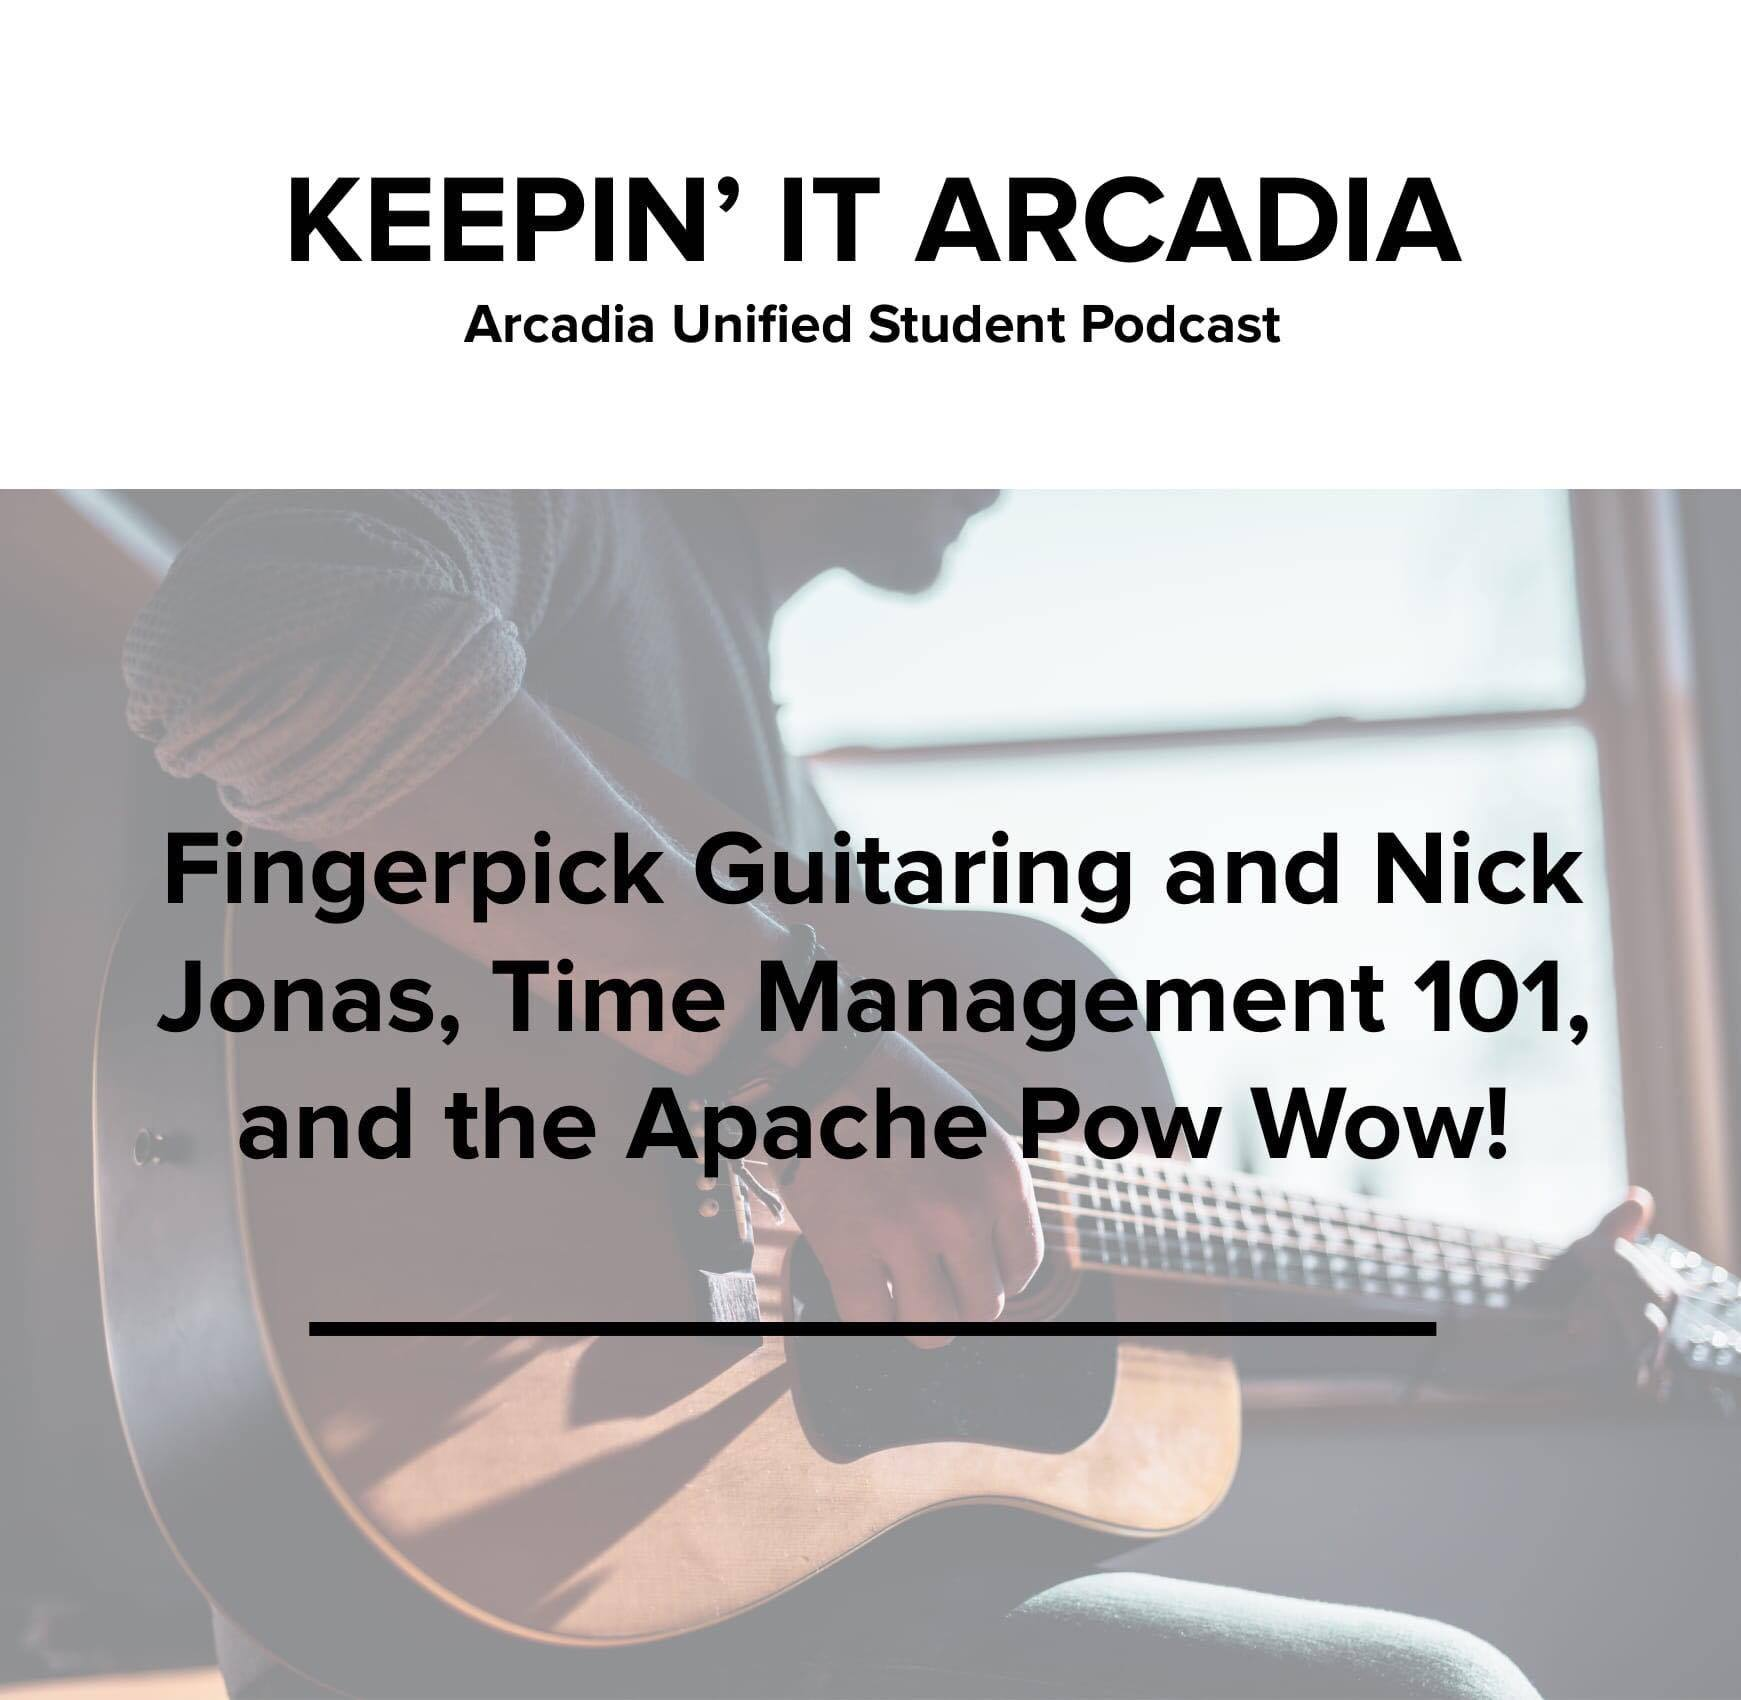 S2 #22 Fingerpick Guitaring and Nick Jonas, Time Management 101, and the Apache Pow Wow!